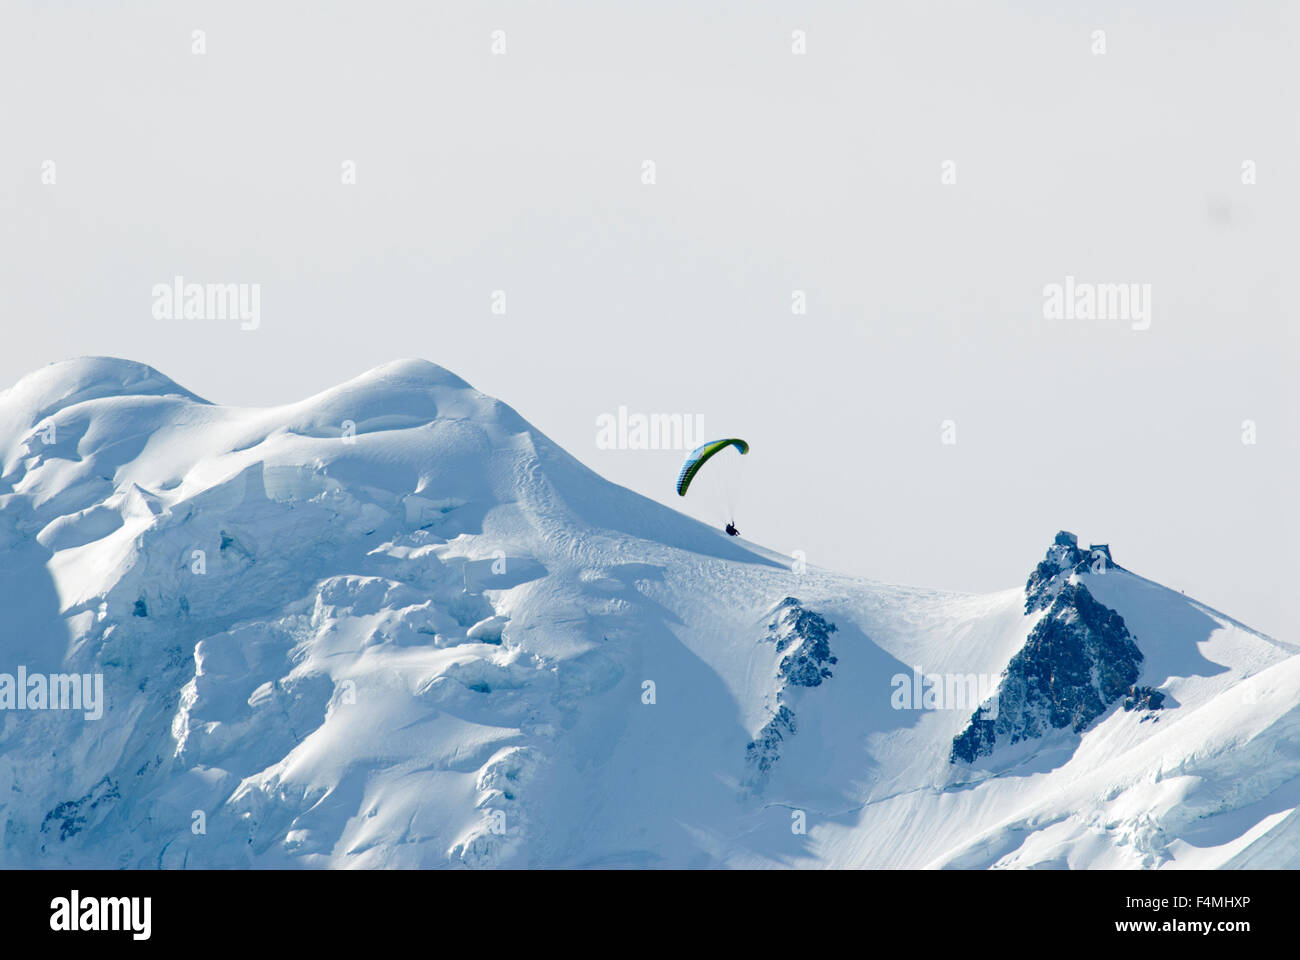 Para glider soaring over the glacier and snow clad flanks of the Mt Blanc massif - Stock Image